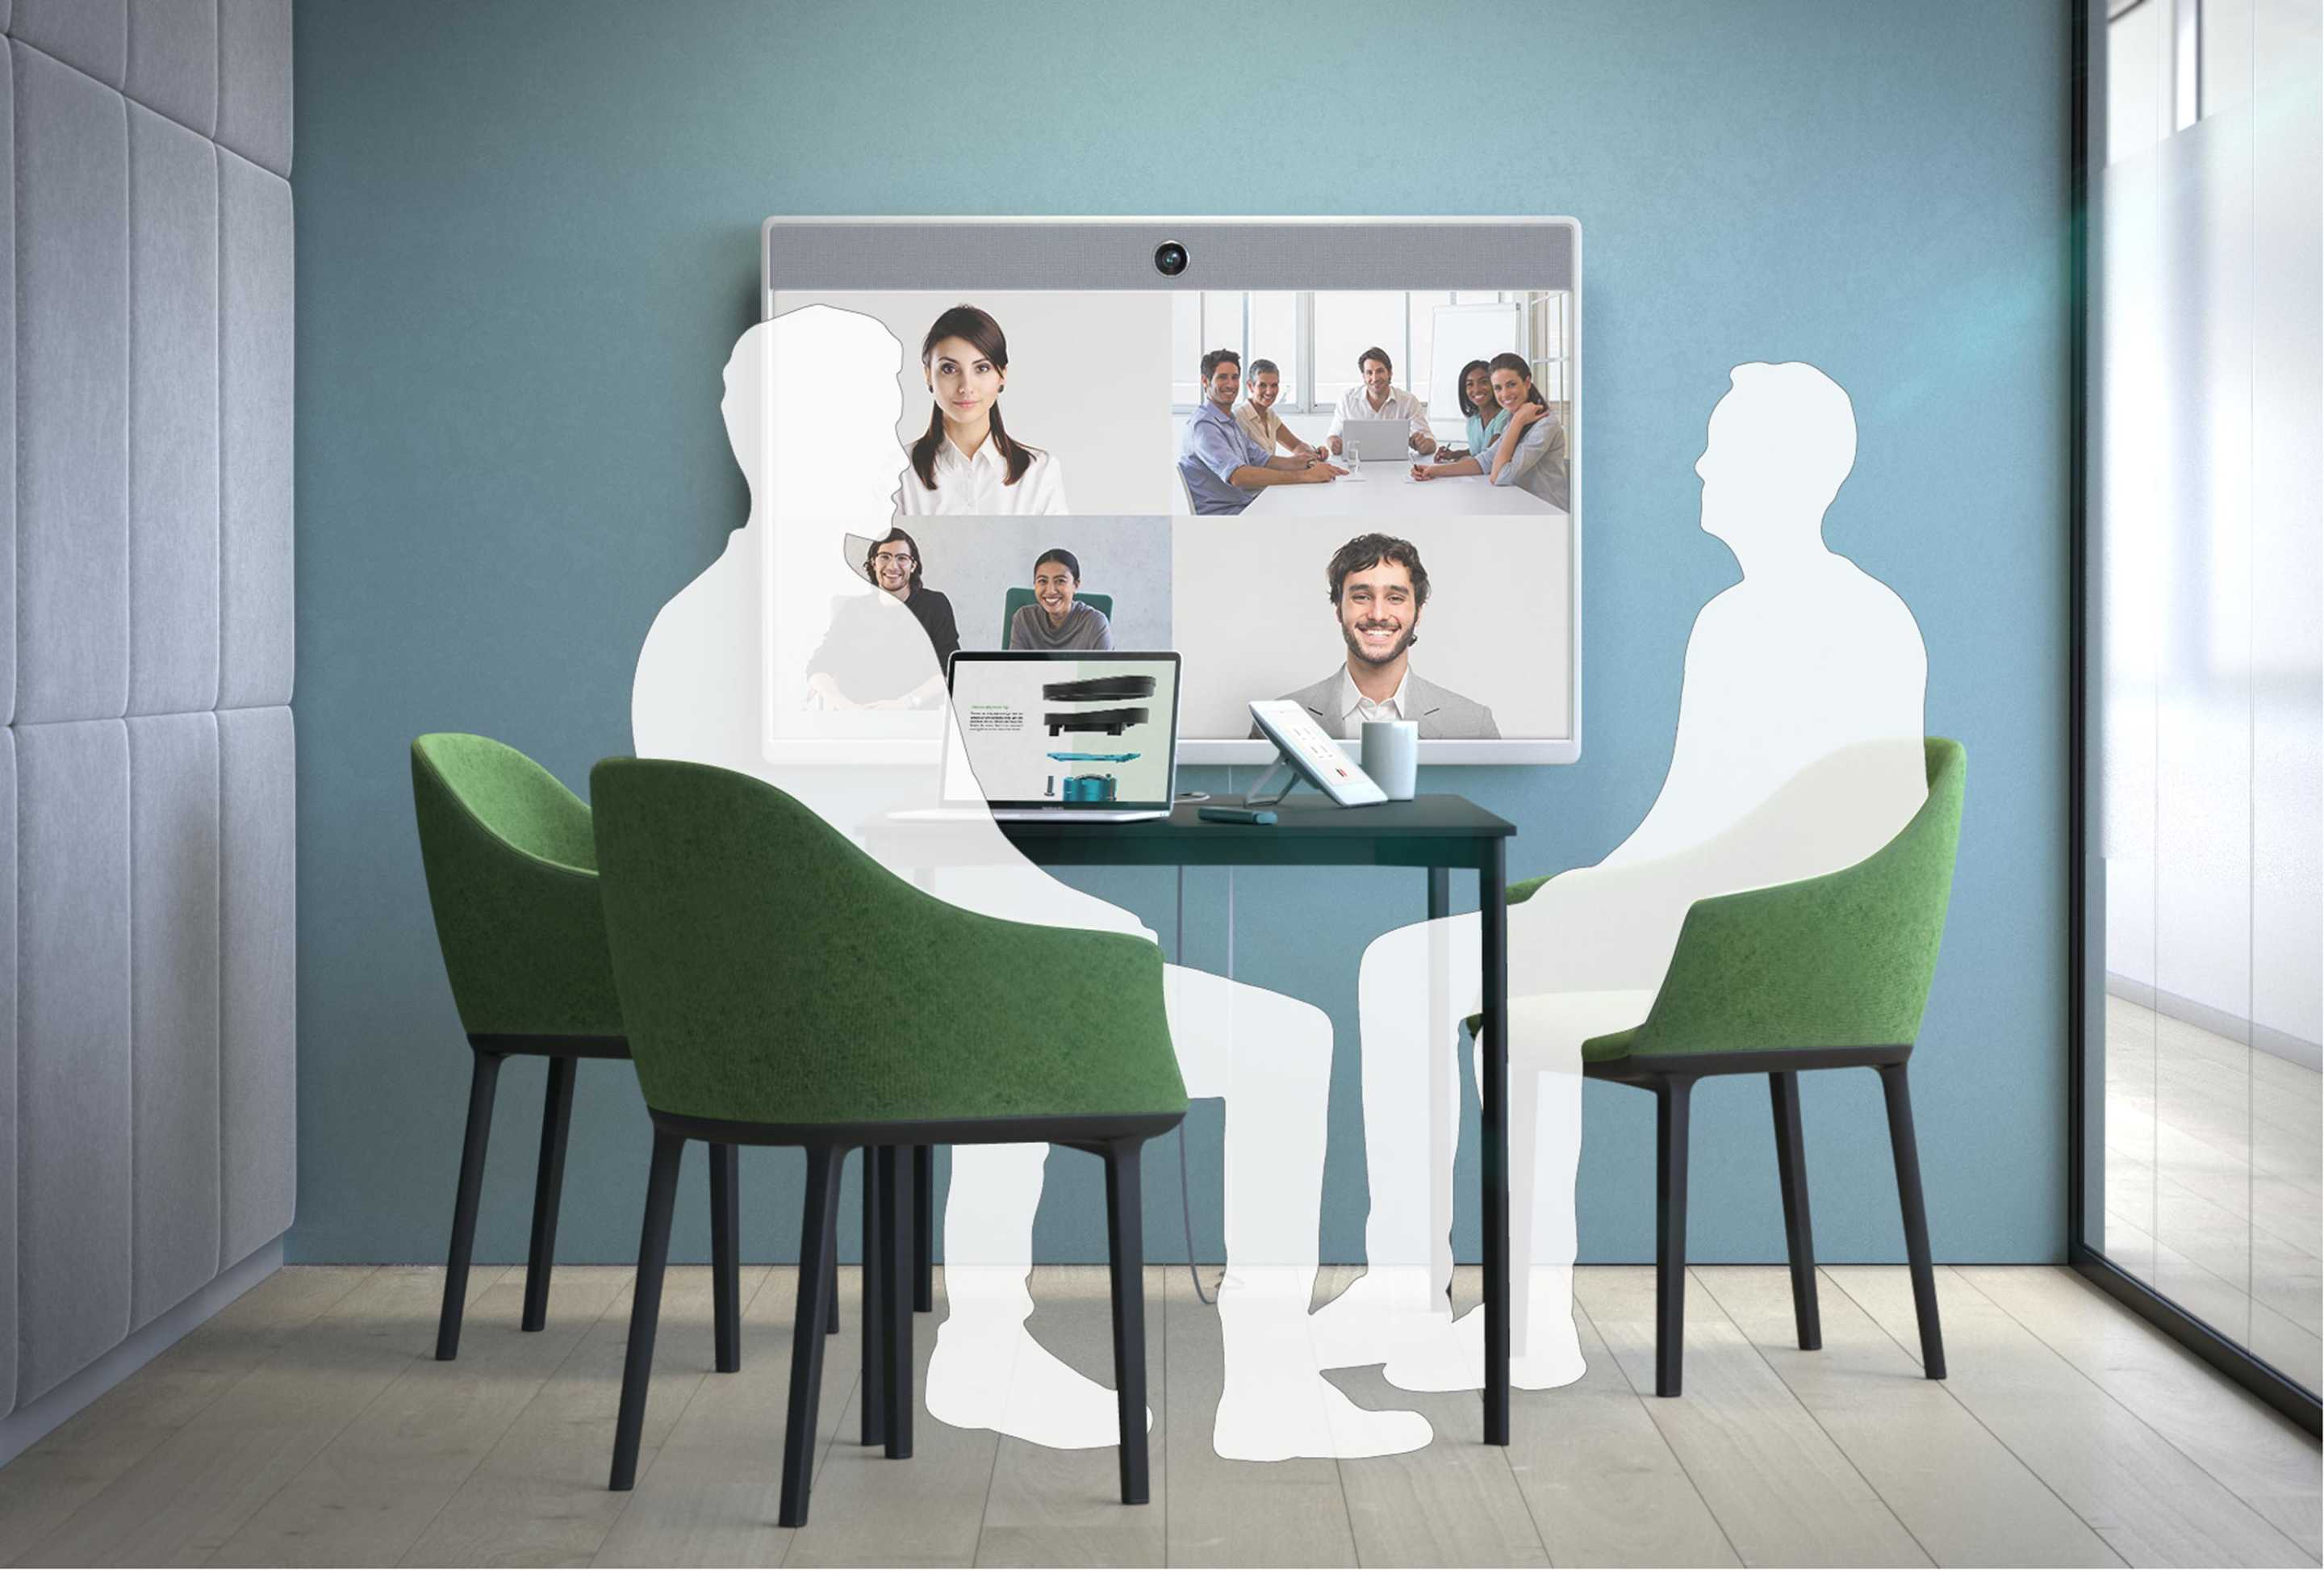 Cisco Webex Room 55 in a Video meeting within a medium sized Huddle